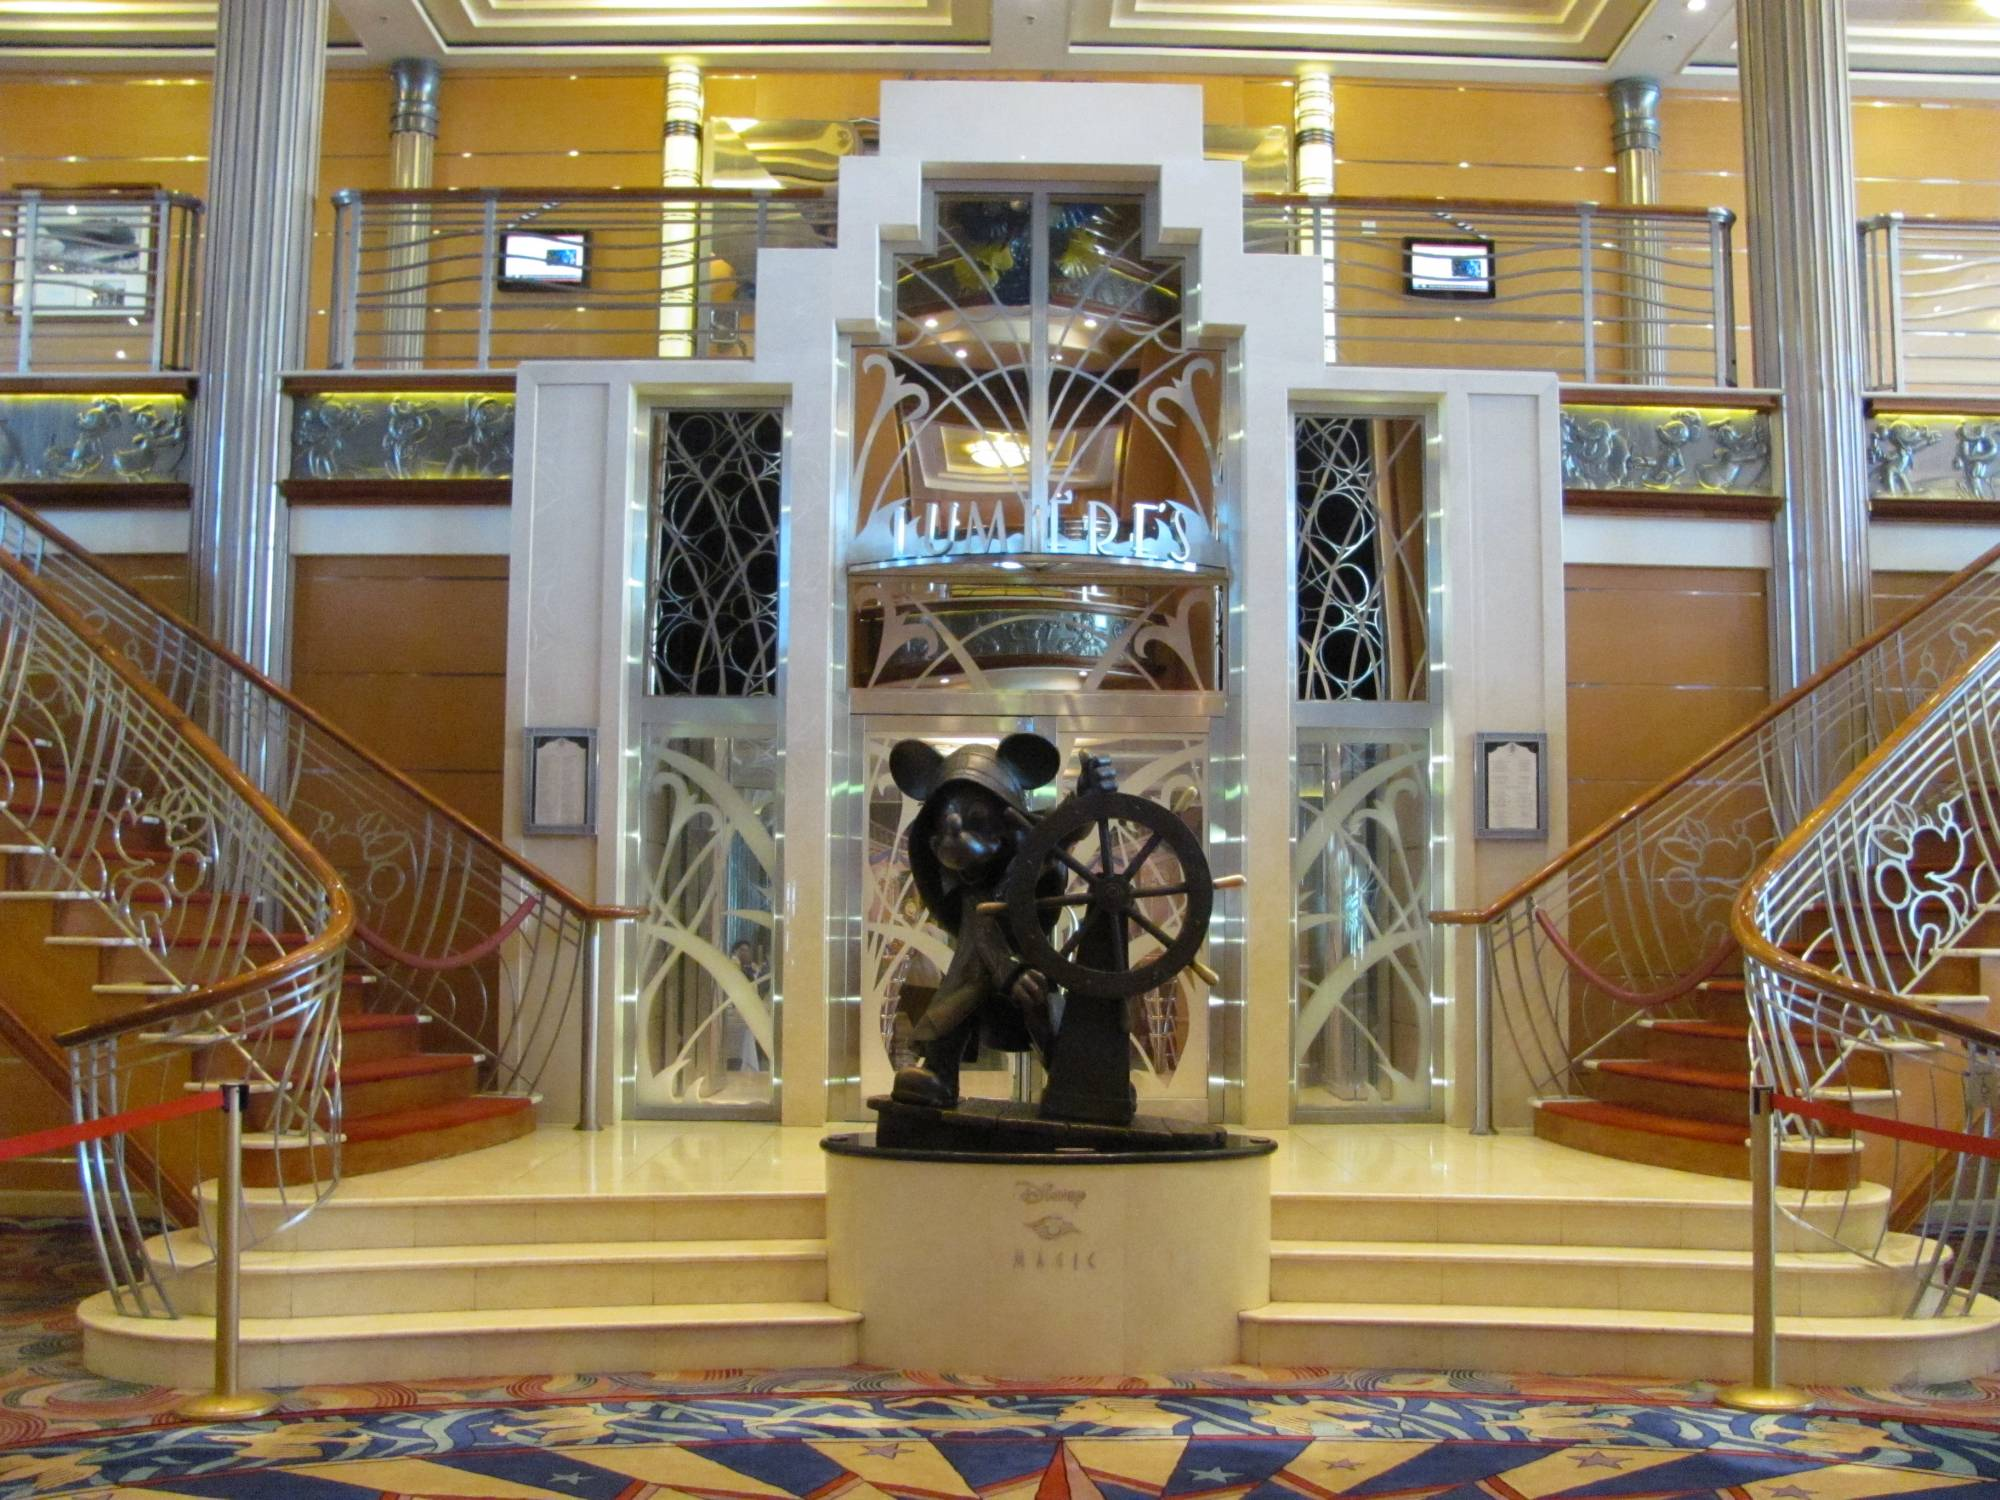 Disney Magic Lobby Atrium